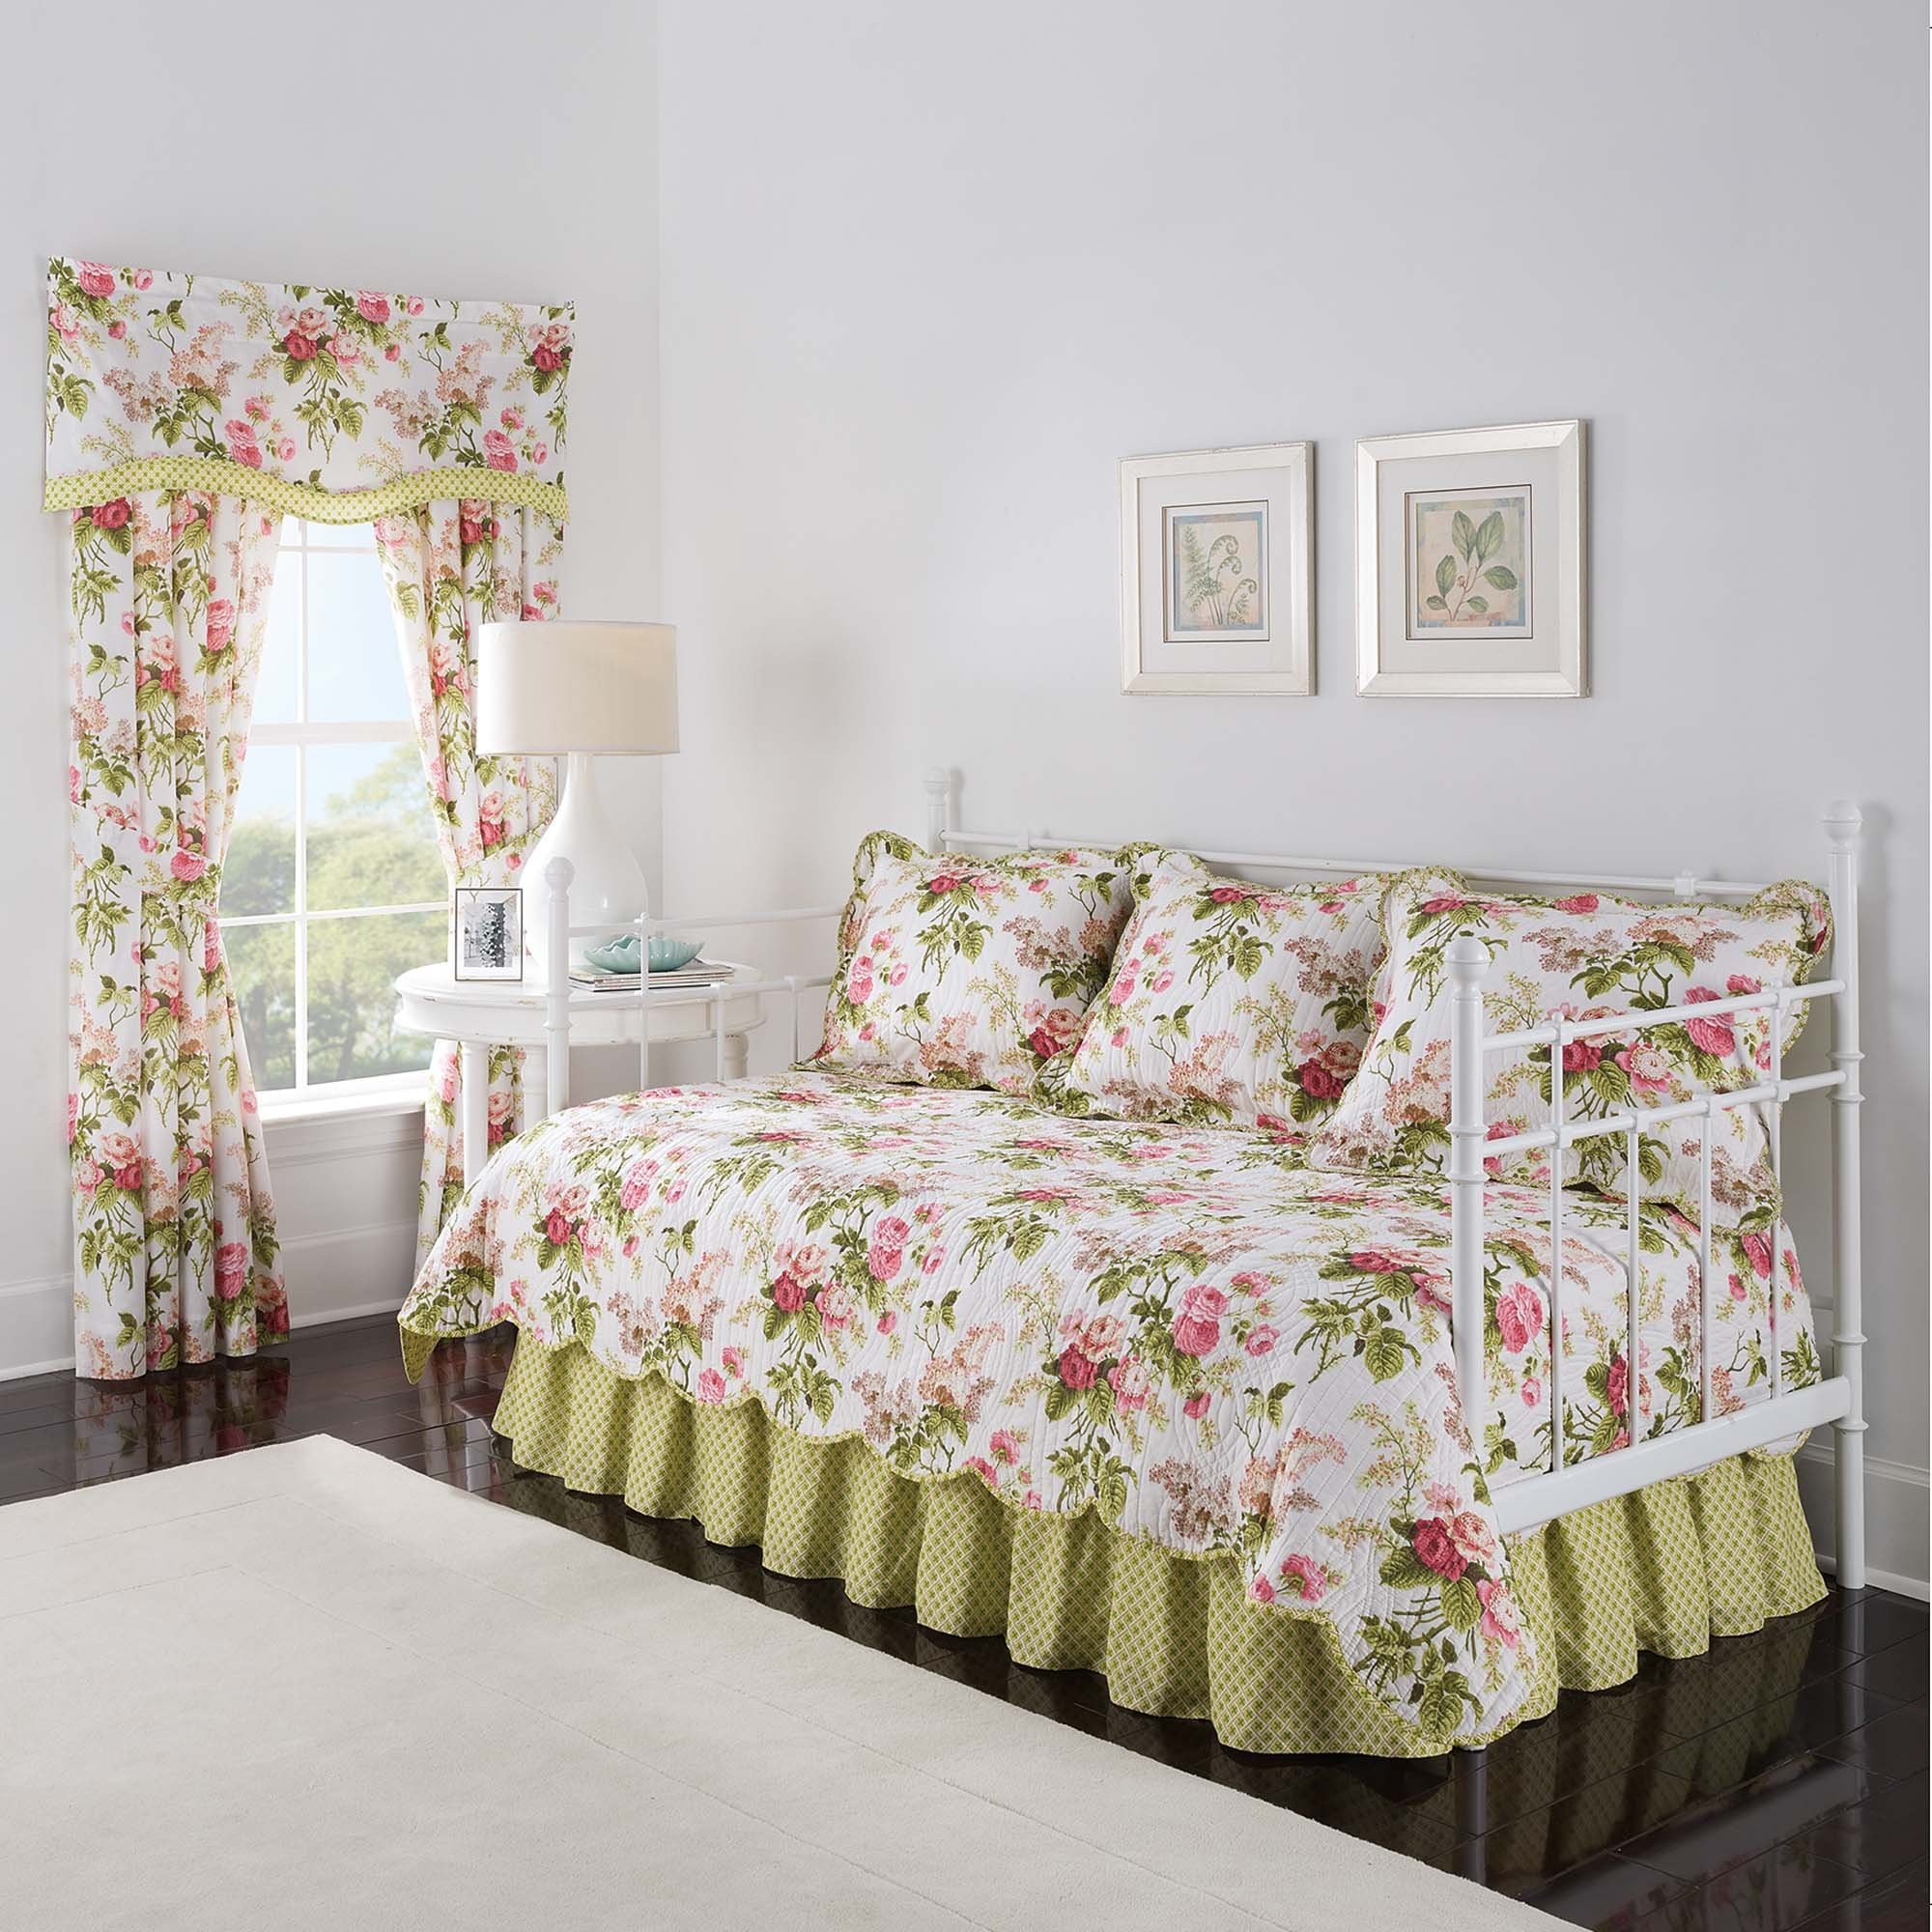 Waverly Emma's Garden Daybed Set, 105x54, Blossom